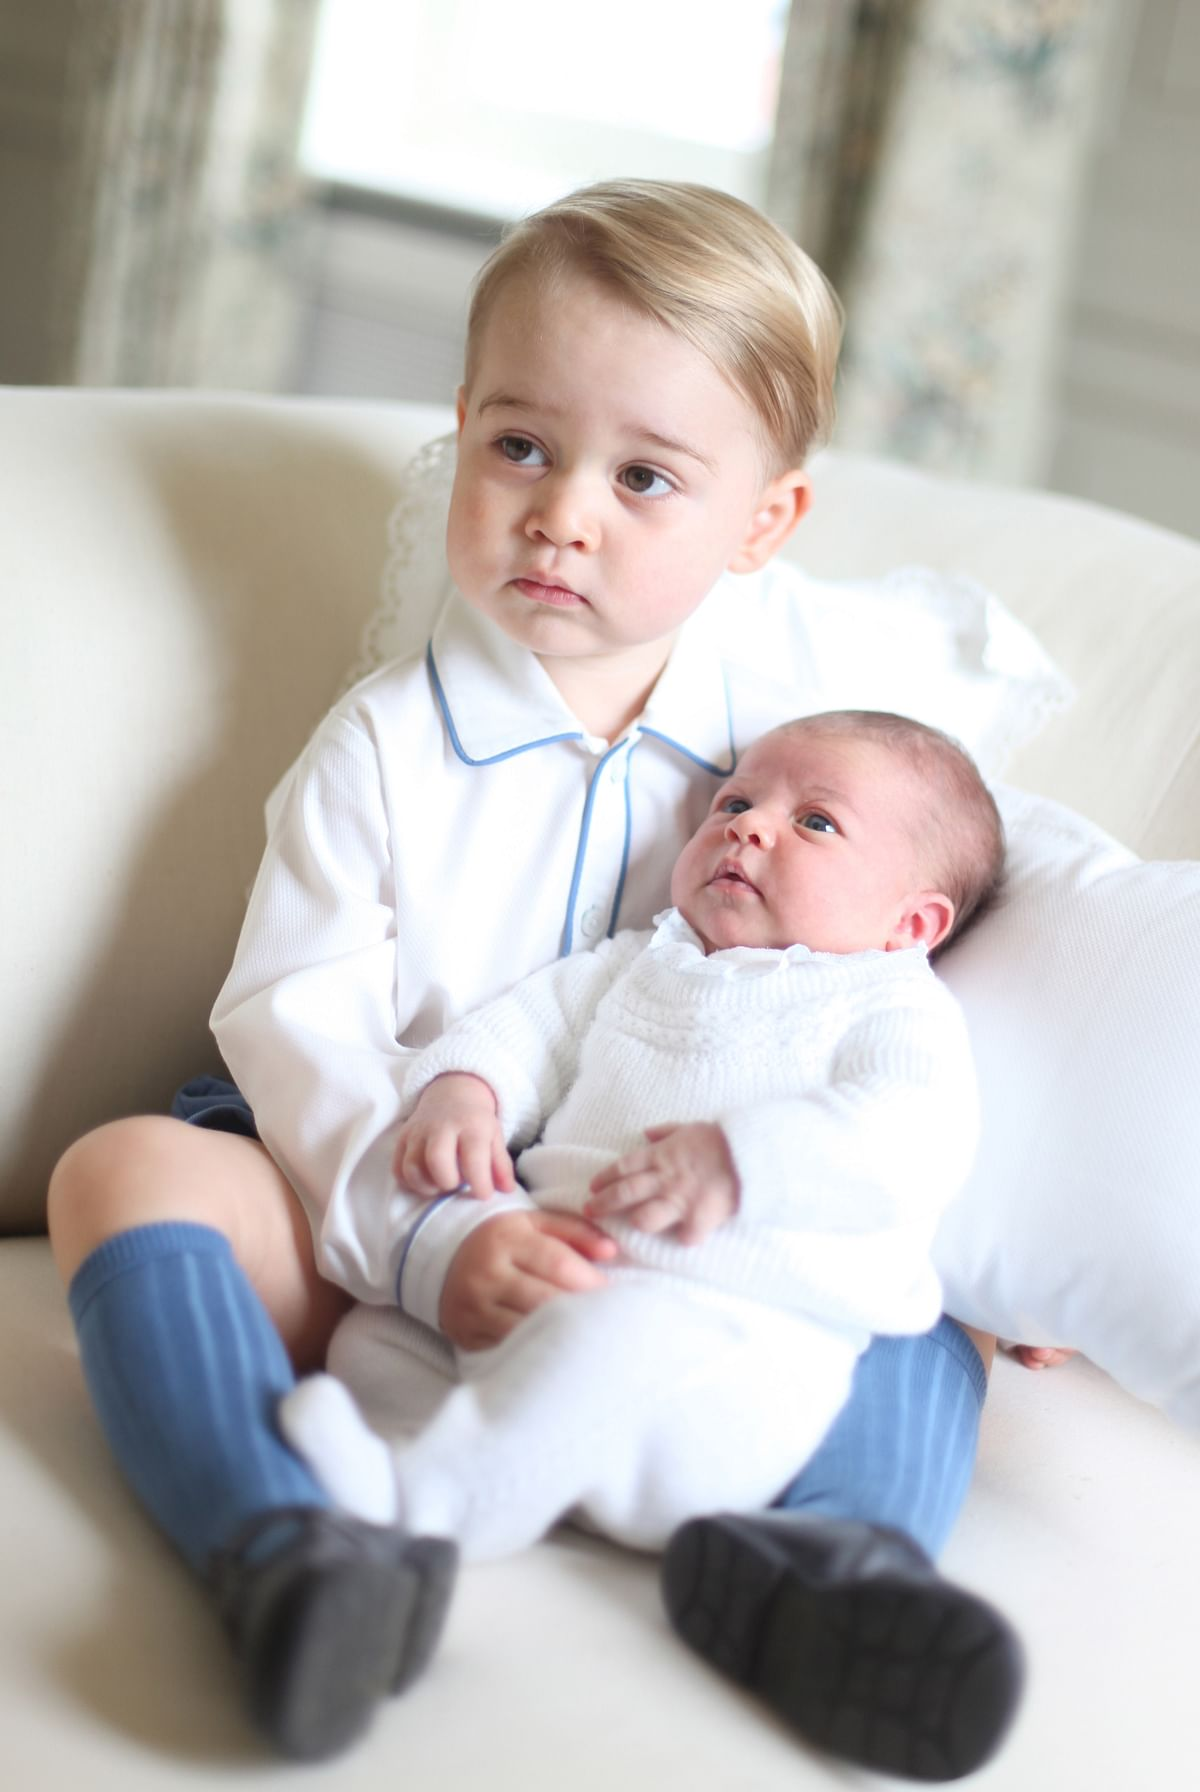 These pictures were taken by Catherine in mid-May at Anmer Hall in Norfolk, the country home where the royal couple stay with their children. (Photo: Reuters)